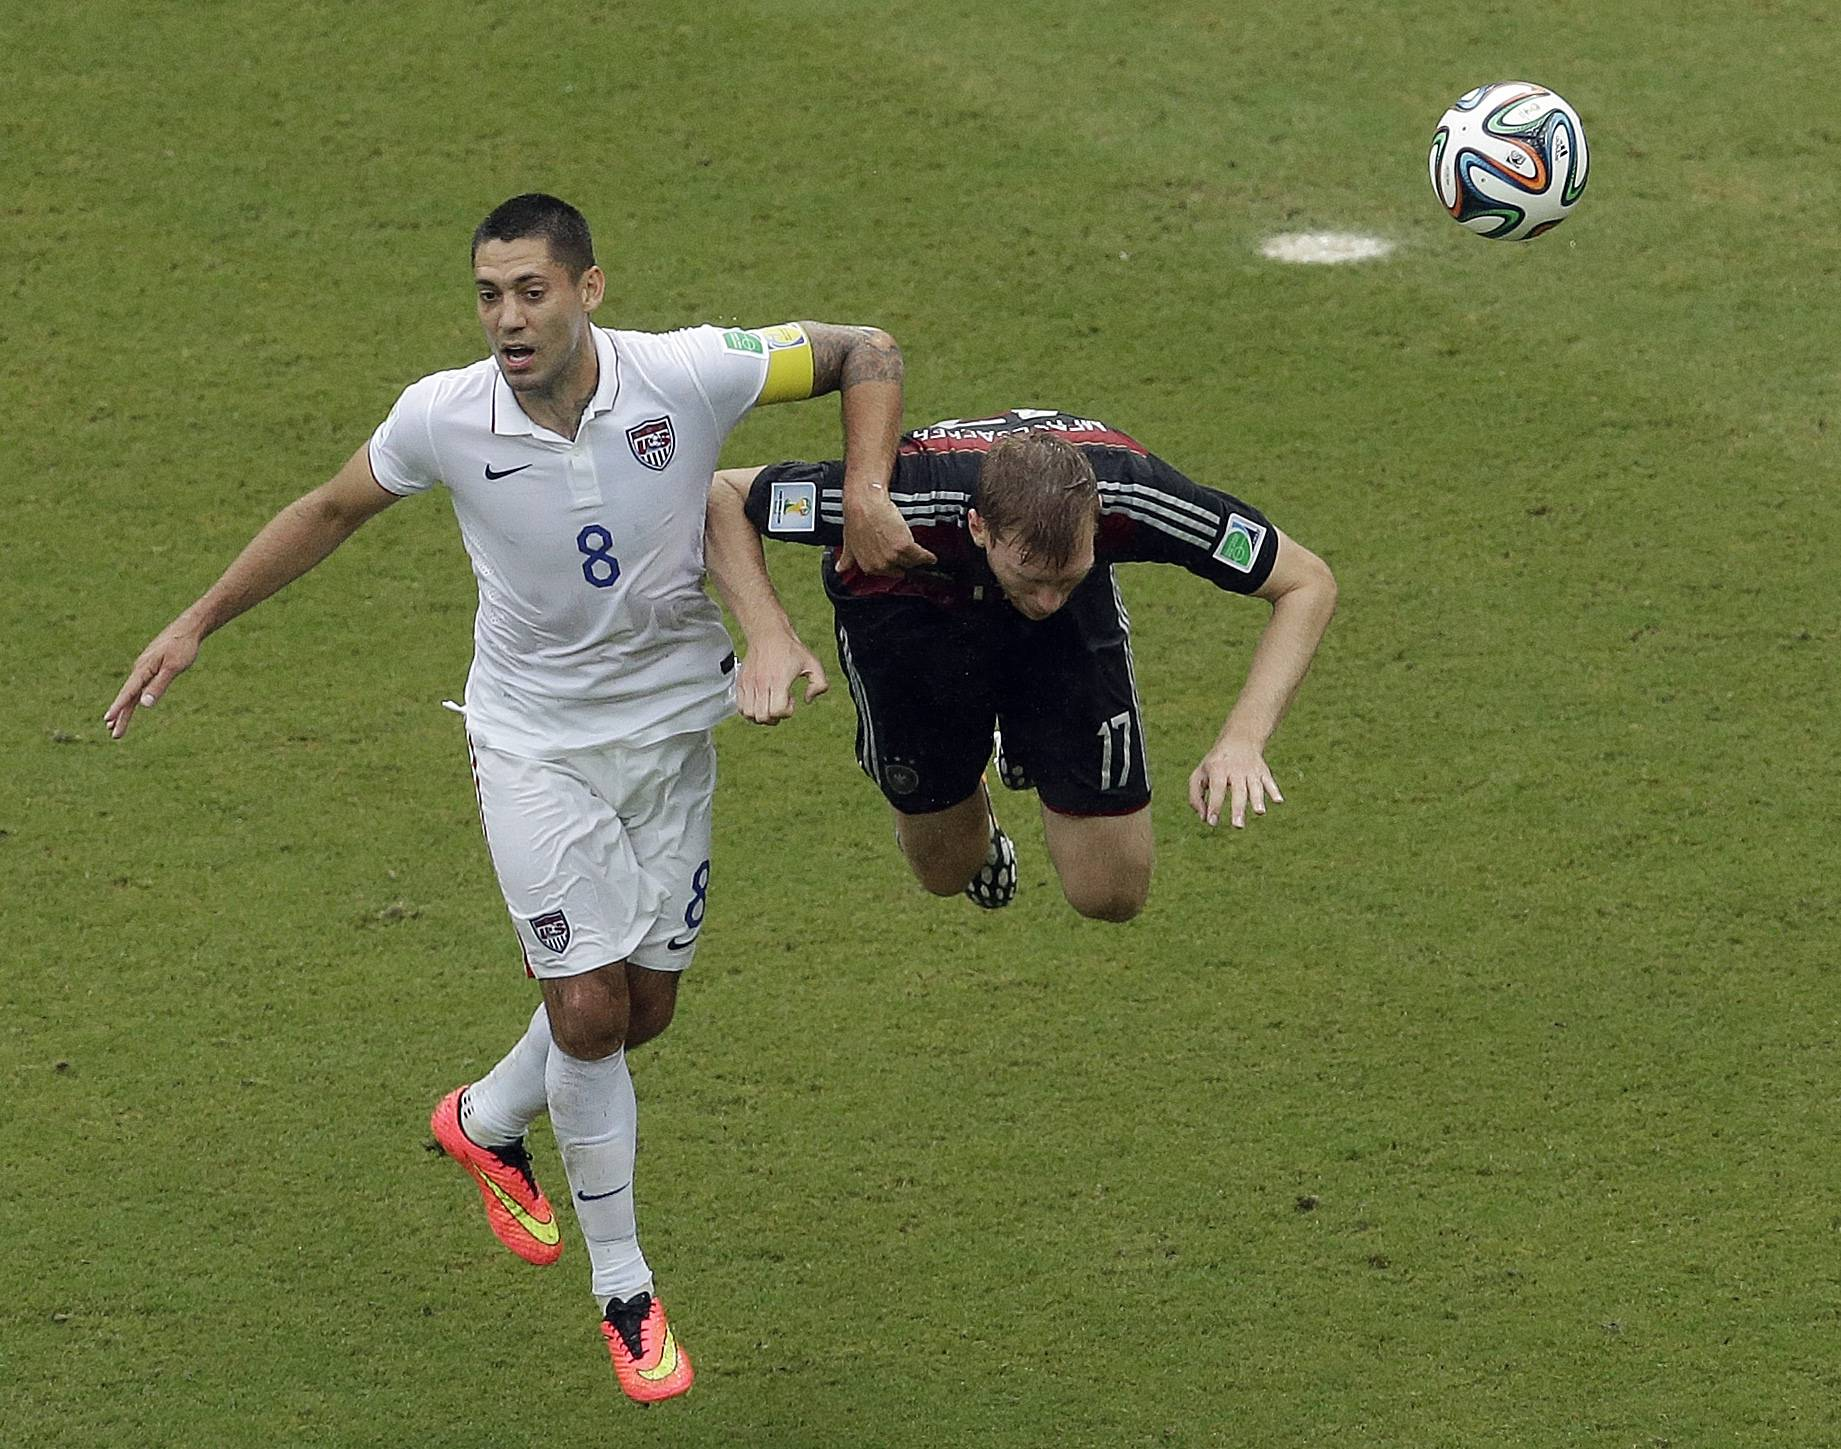 United States' Clint Dempsey (8) and Germany's Per Mertesacker battle for the ball during the group G World Cup soccer match between the USA and Germany at the Arena Pernambuco in Recife, Brazil, Thursday, June 26, 2014.